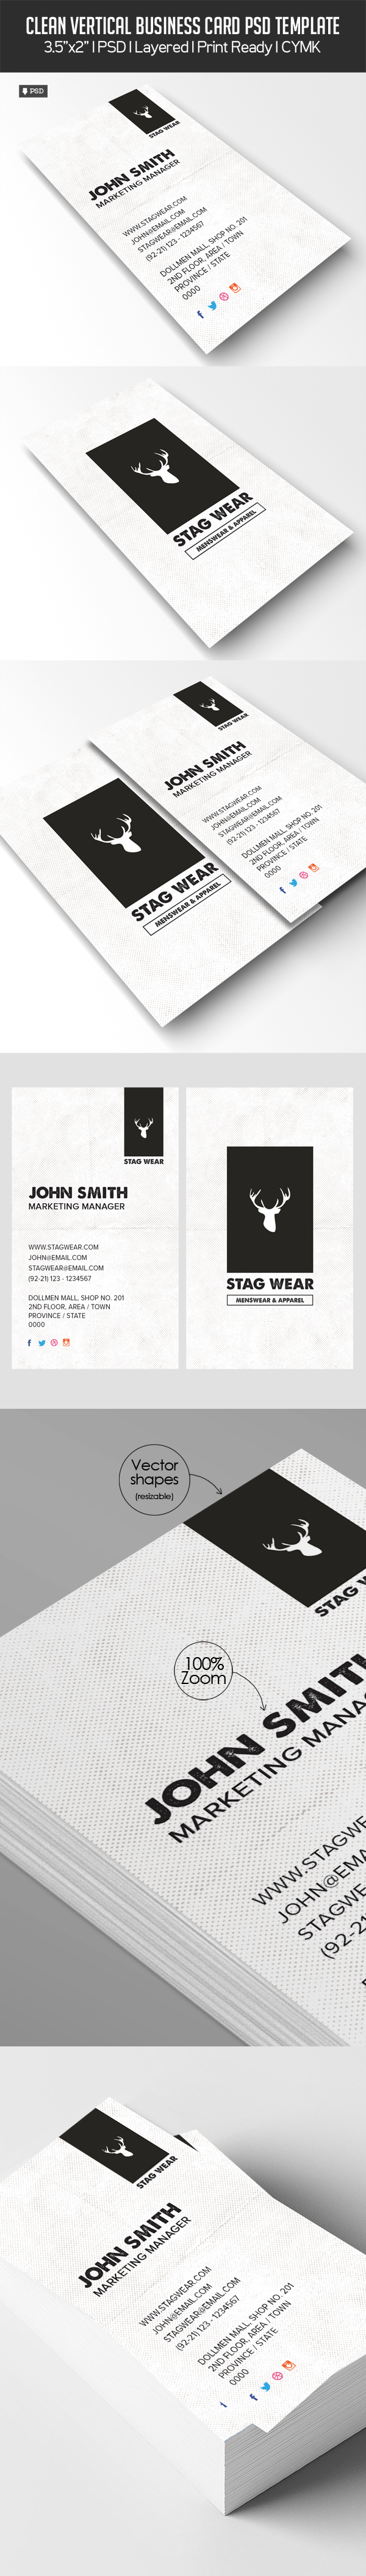 Freebie Vertical Business Card Psd Template